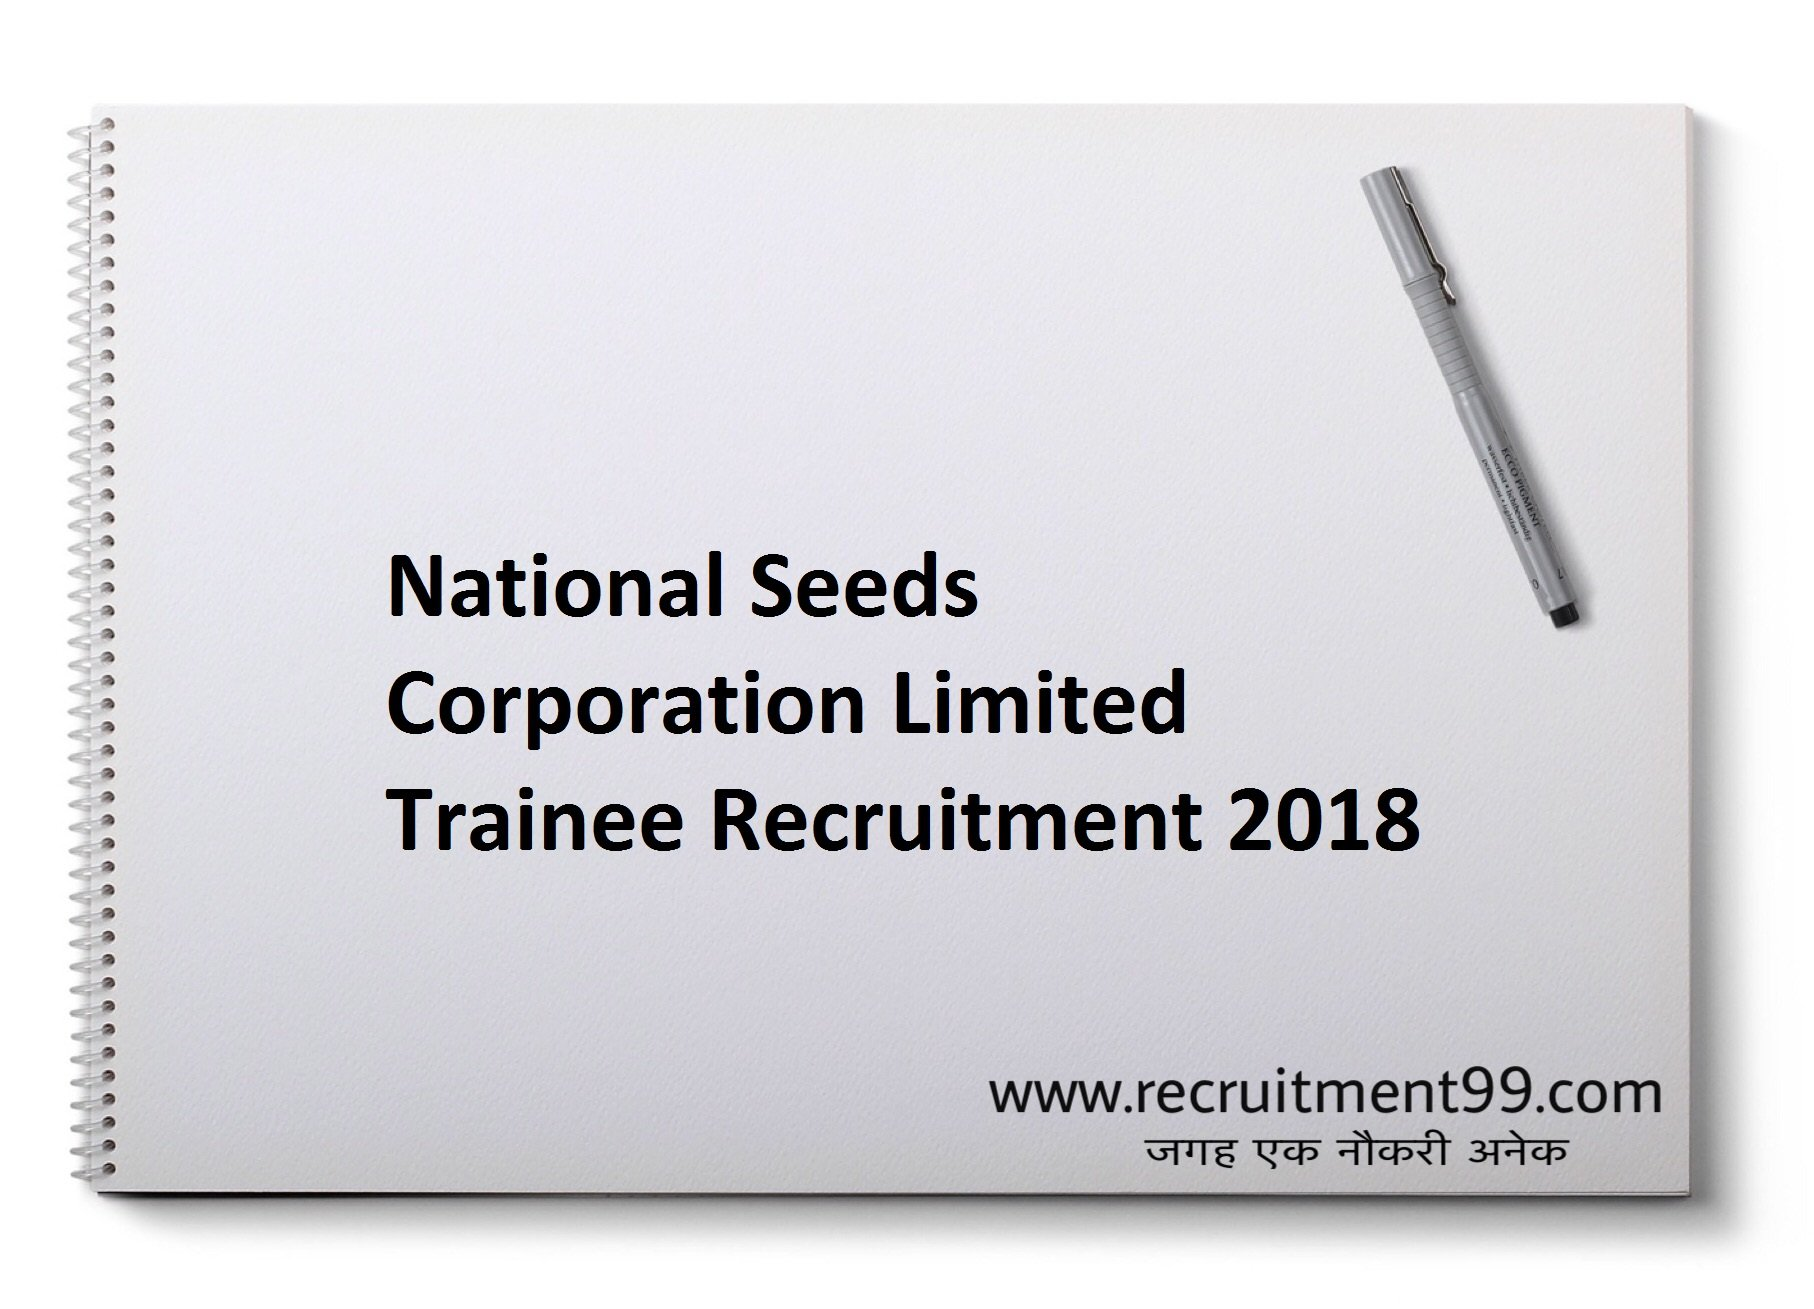 National Seeds Corporation Limited Trainee Recruitment Admit Card Result 2018